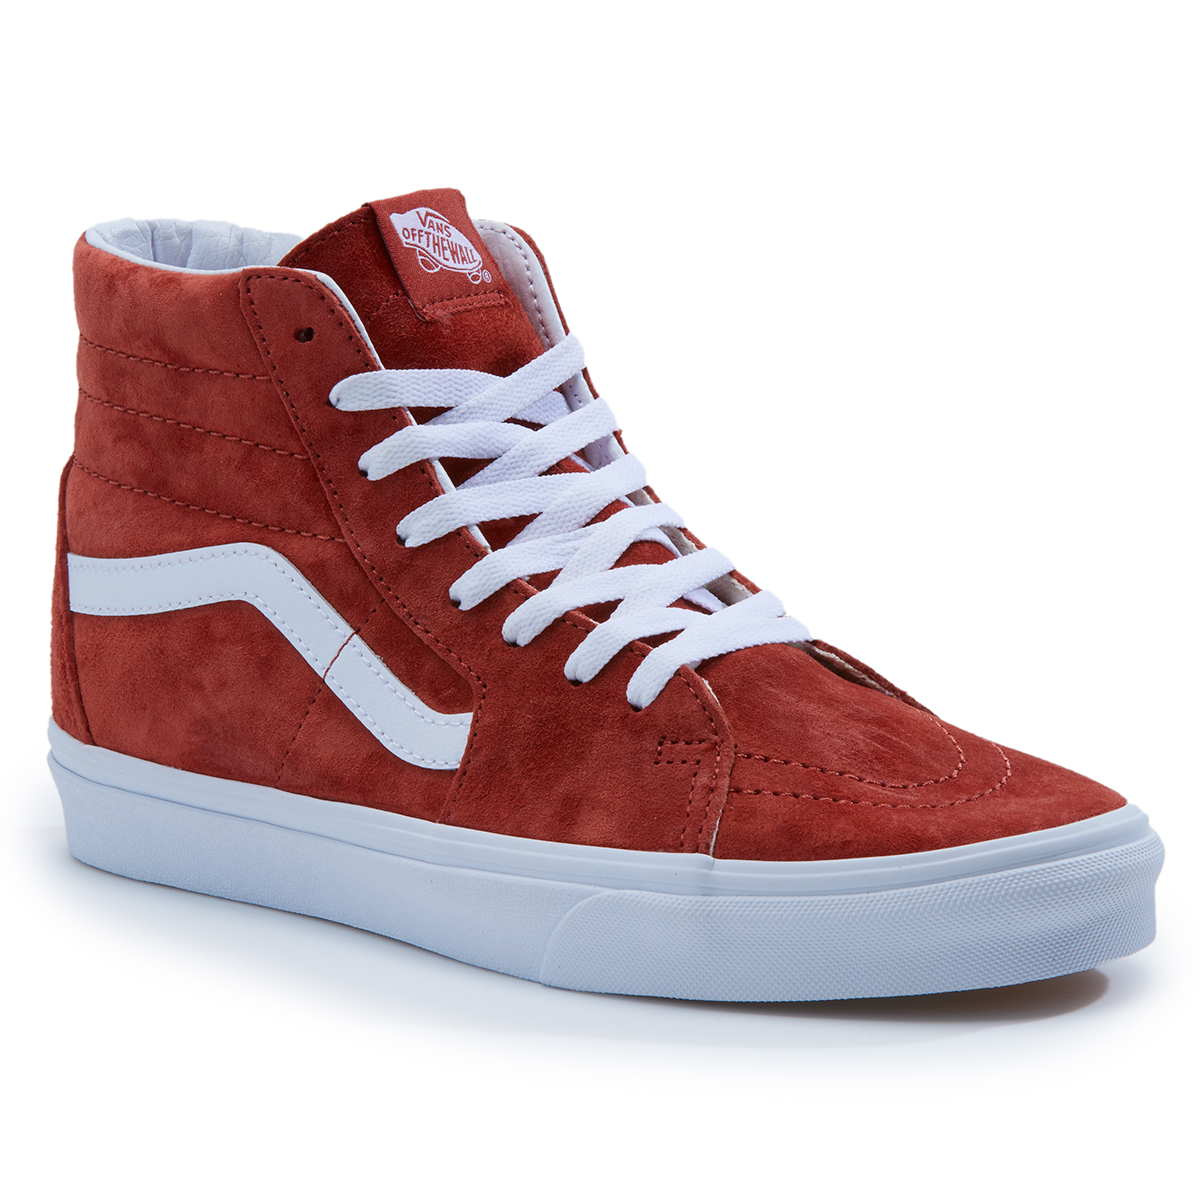 Vans Men's Sk8-Hi Pig Suede Casual Shoes - Brown, 9